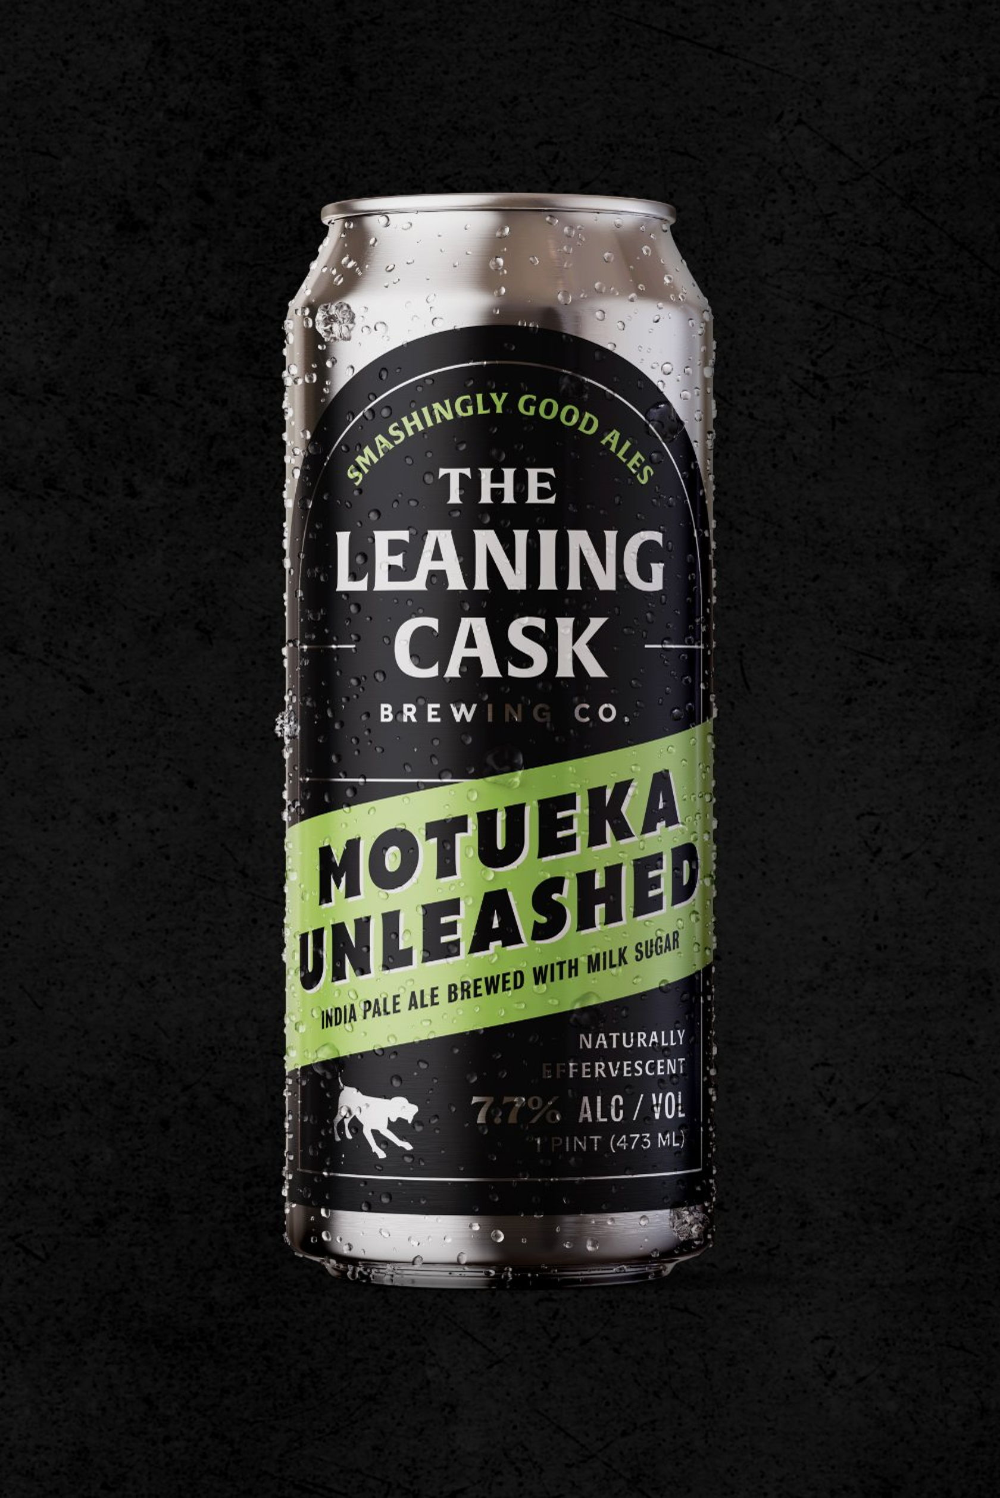 The Leaning Cask Brewing Co Dieline In 2020 India Pale Ale Brewing Co Brewing